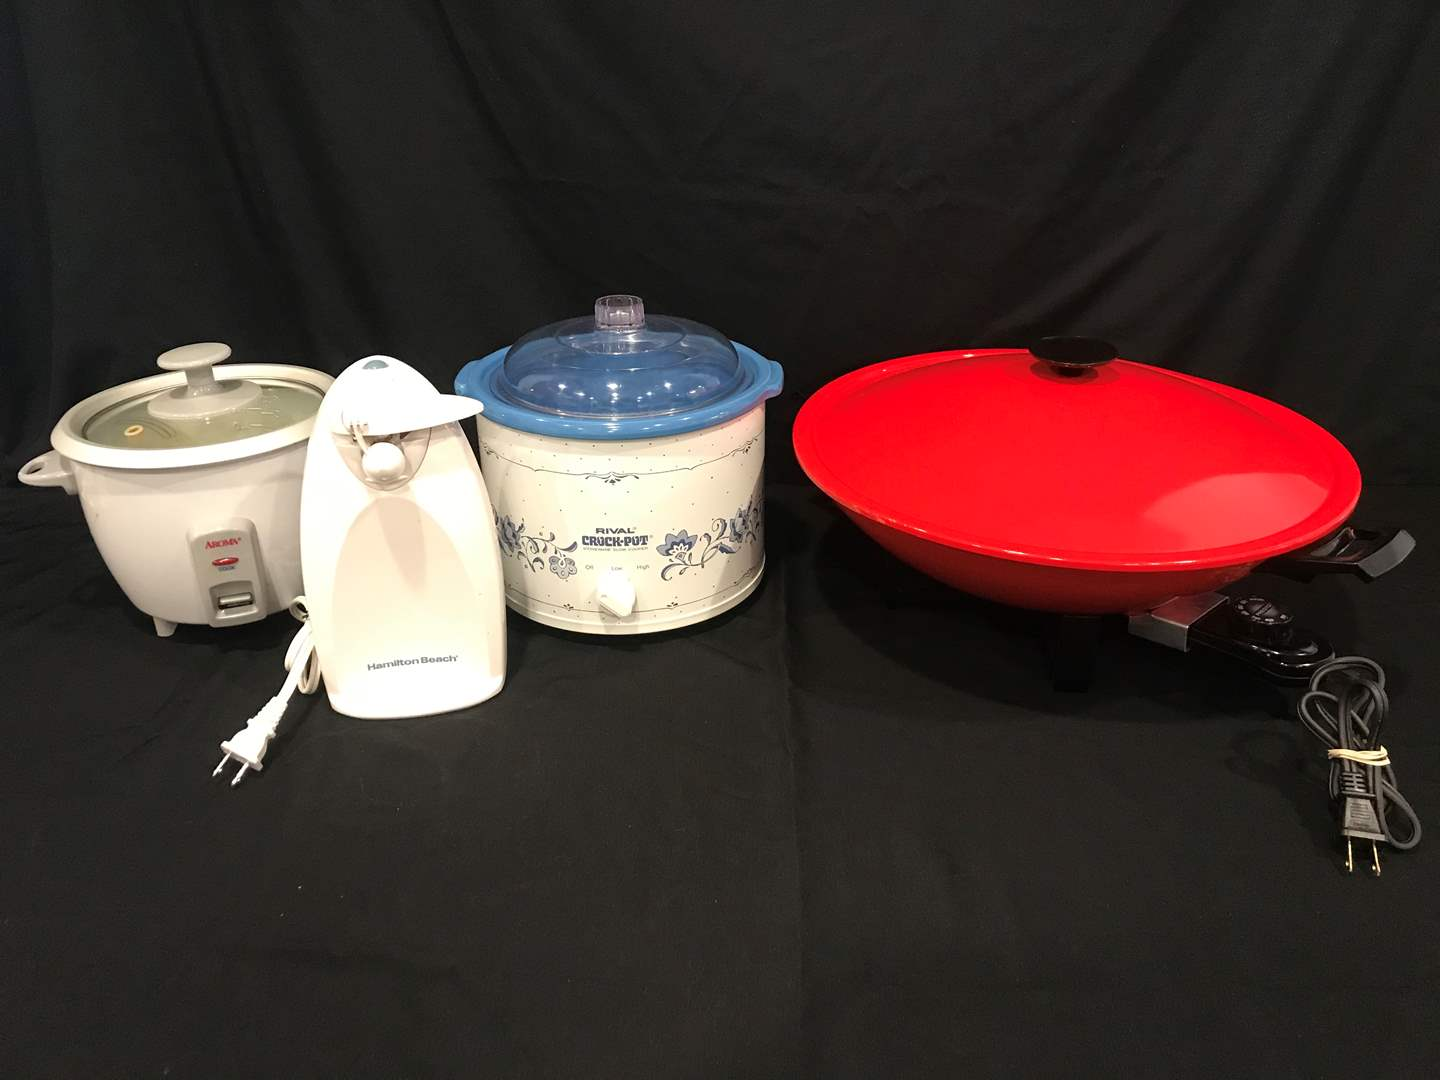 Lot # 85 - Rival Crock Pot, Presto Electric Wok, Hamilton Beach Electric Can Opener, Aroma Rice Cooker (main image)